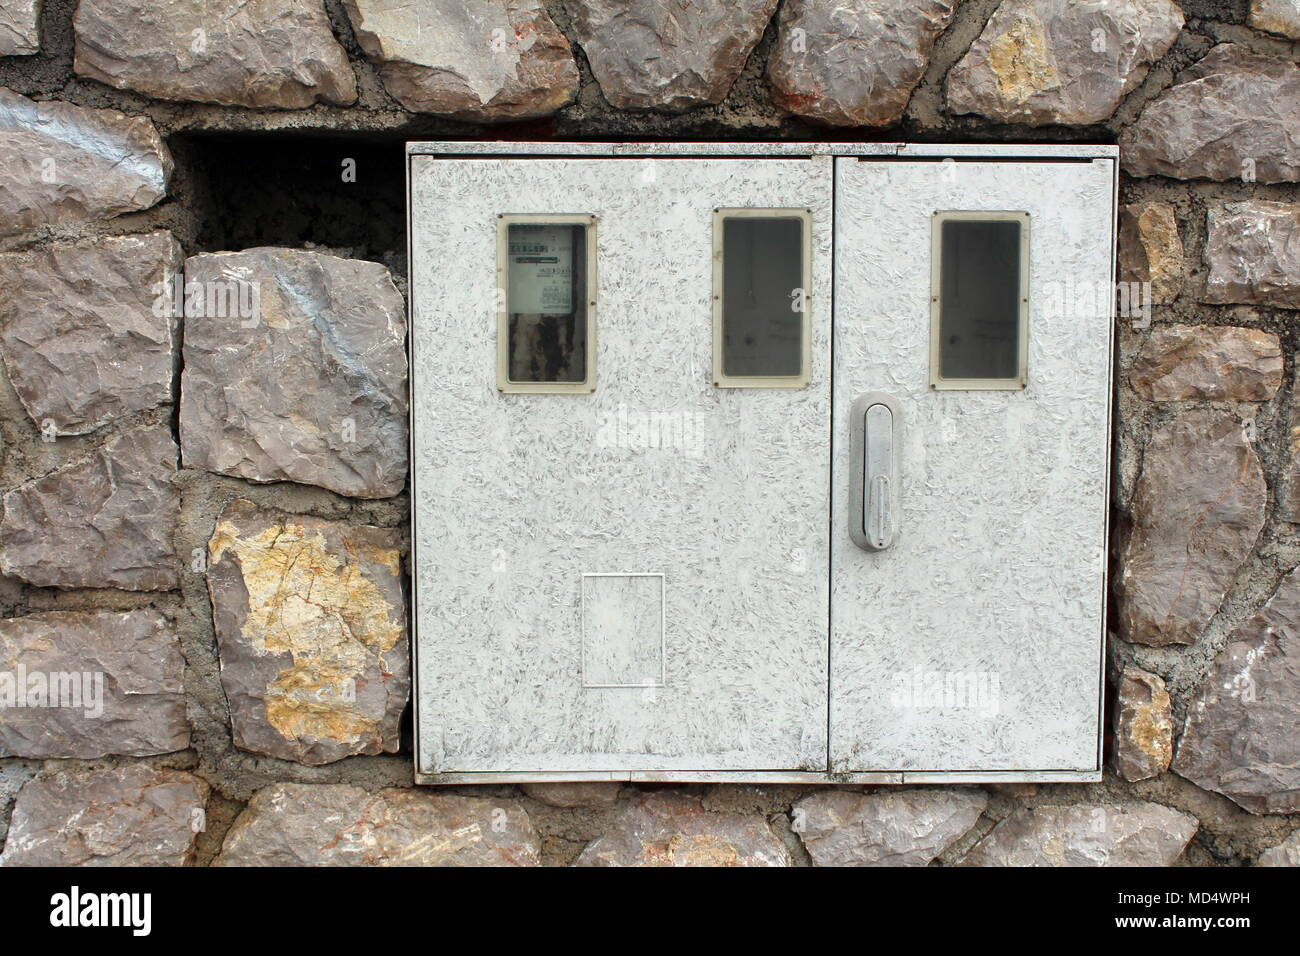 Electric meter box mounted on stone wall with one out of three meters inside and working - Stock Image